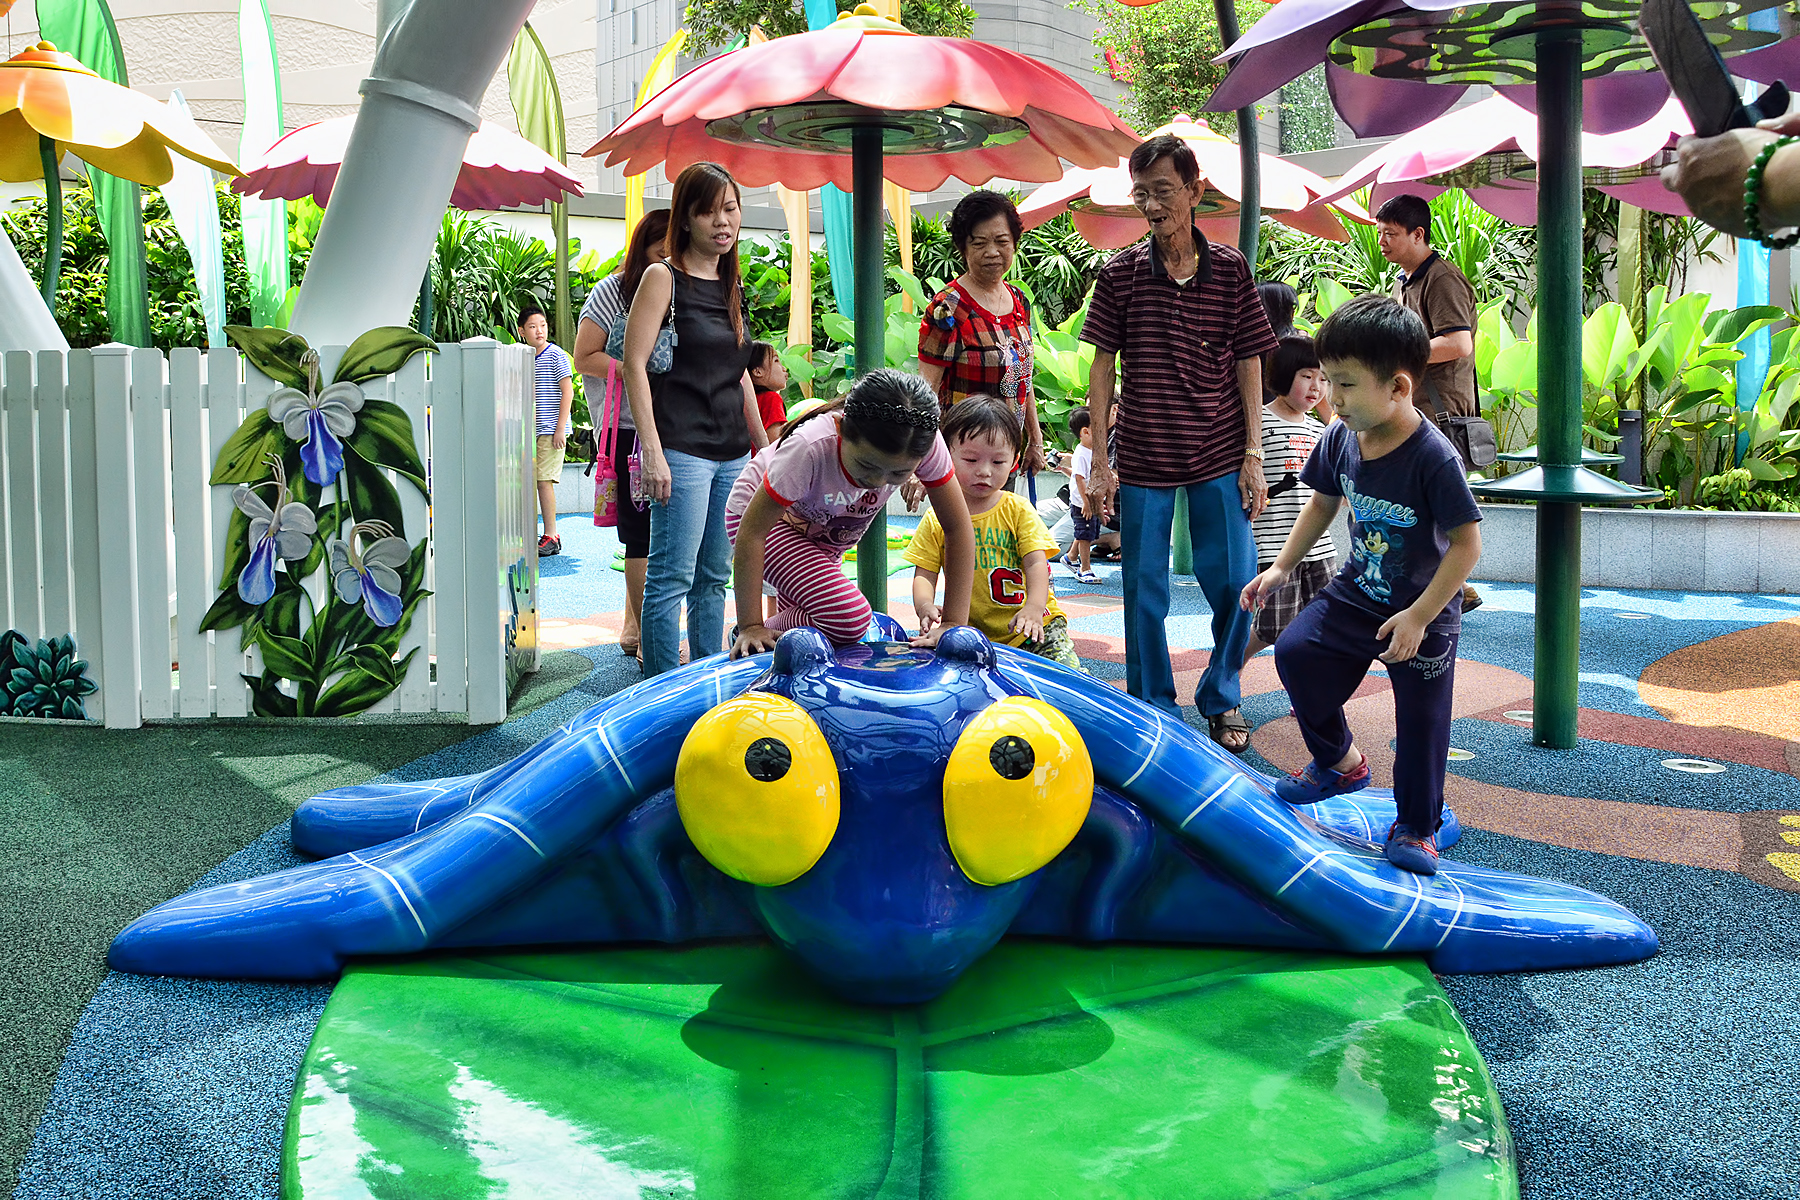 westgate wonderland outdoor playground singapore